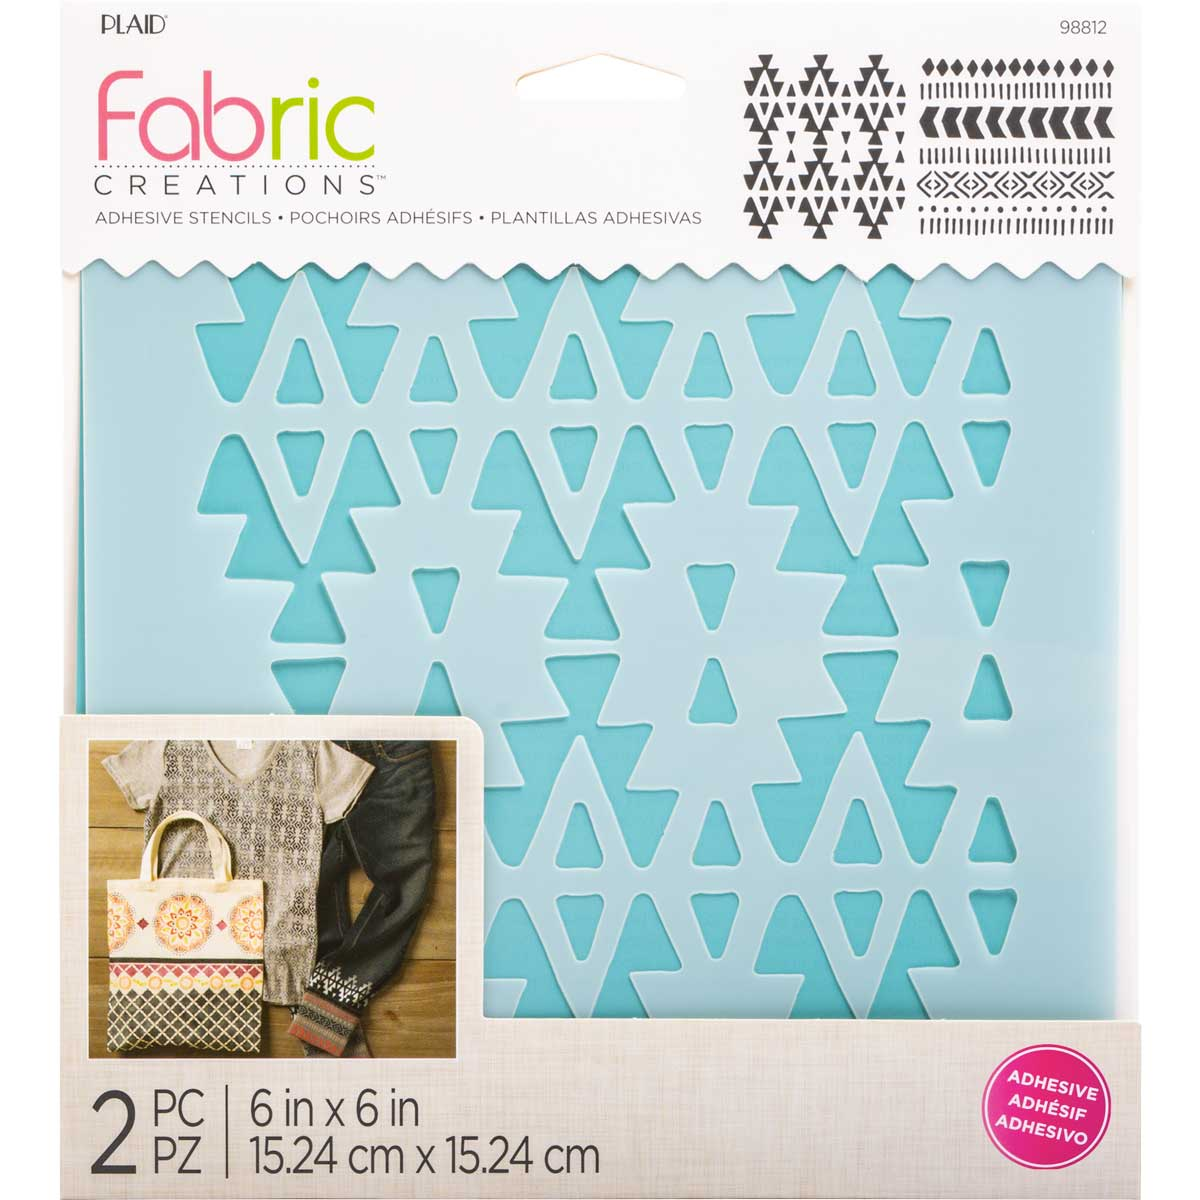 Fabric Creations™ Adhesive Stencils - Aztec, 6